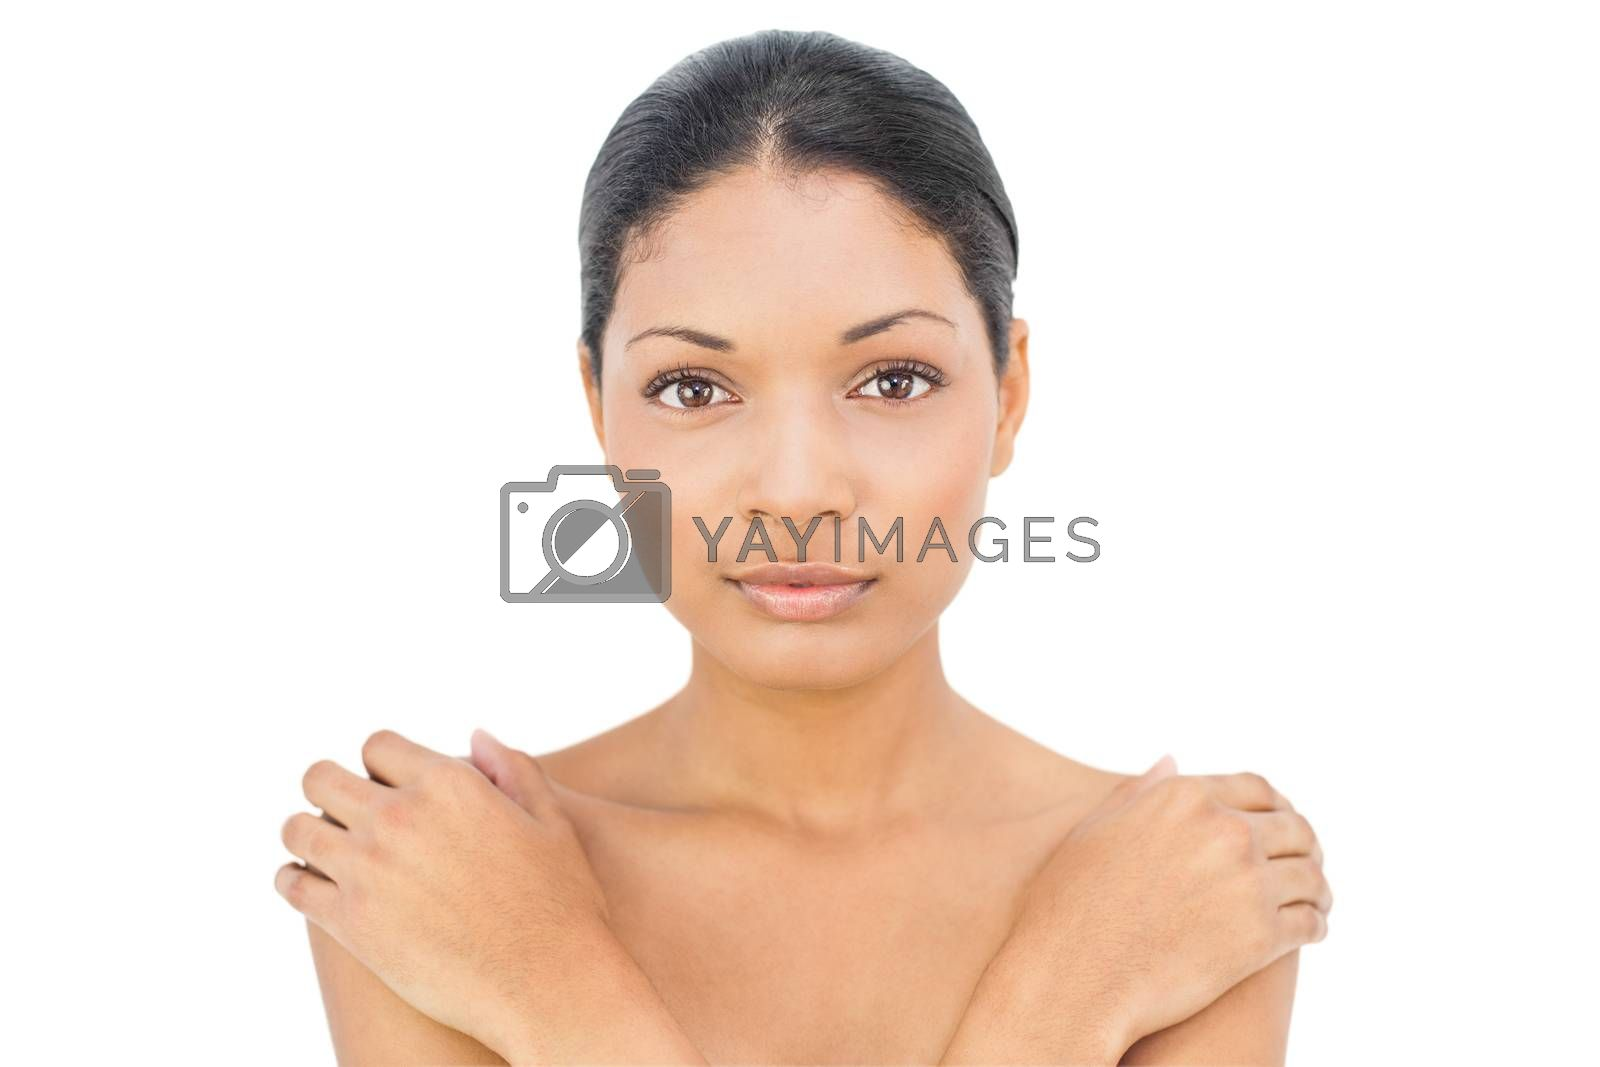 Content black haired woman posing on white background